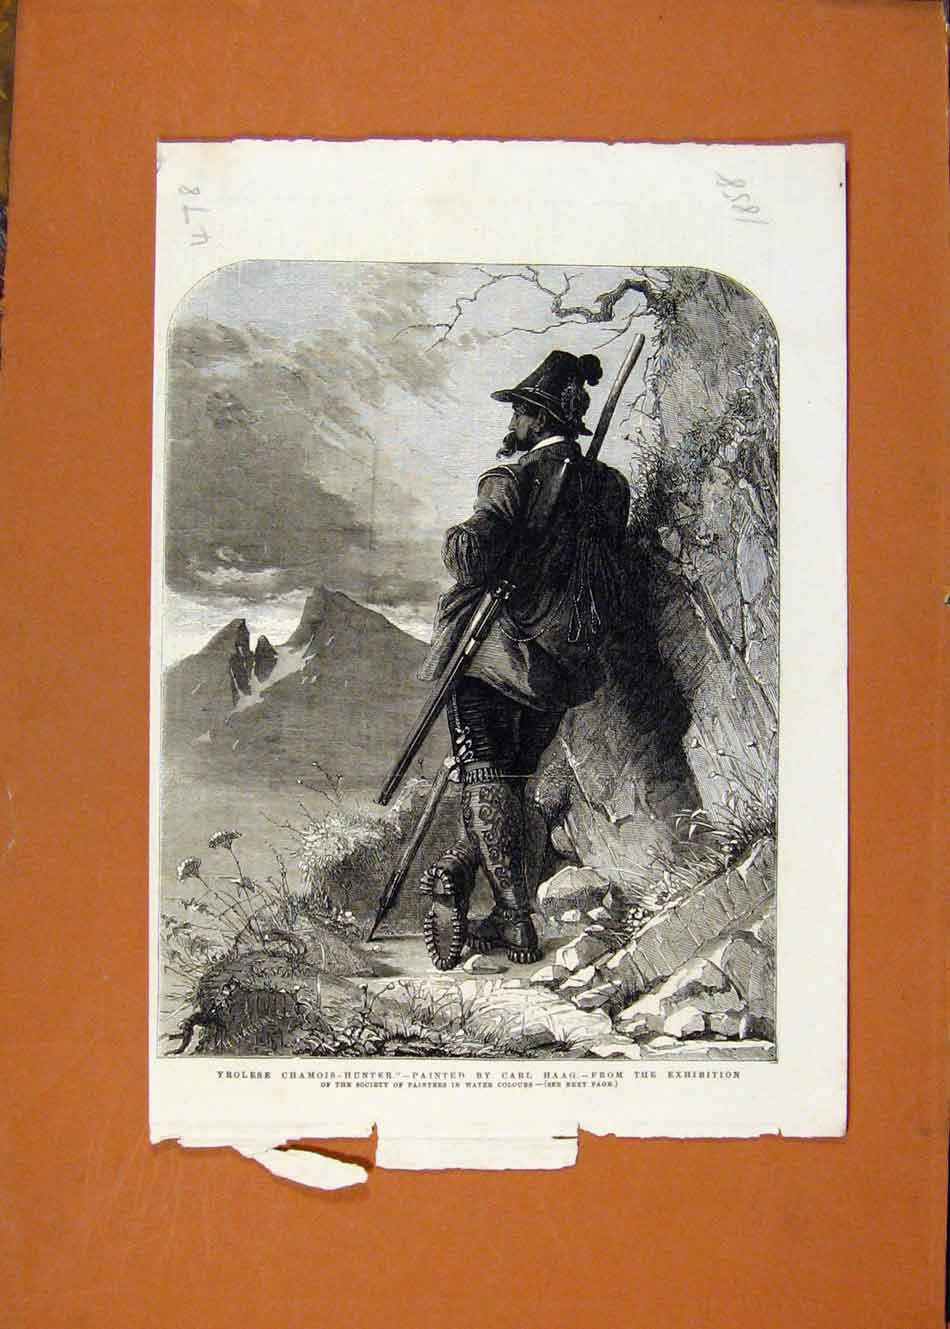 Print Yrolese Camois Hunter Exhibition Painters C1858 788260 Old Original